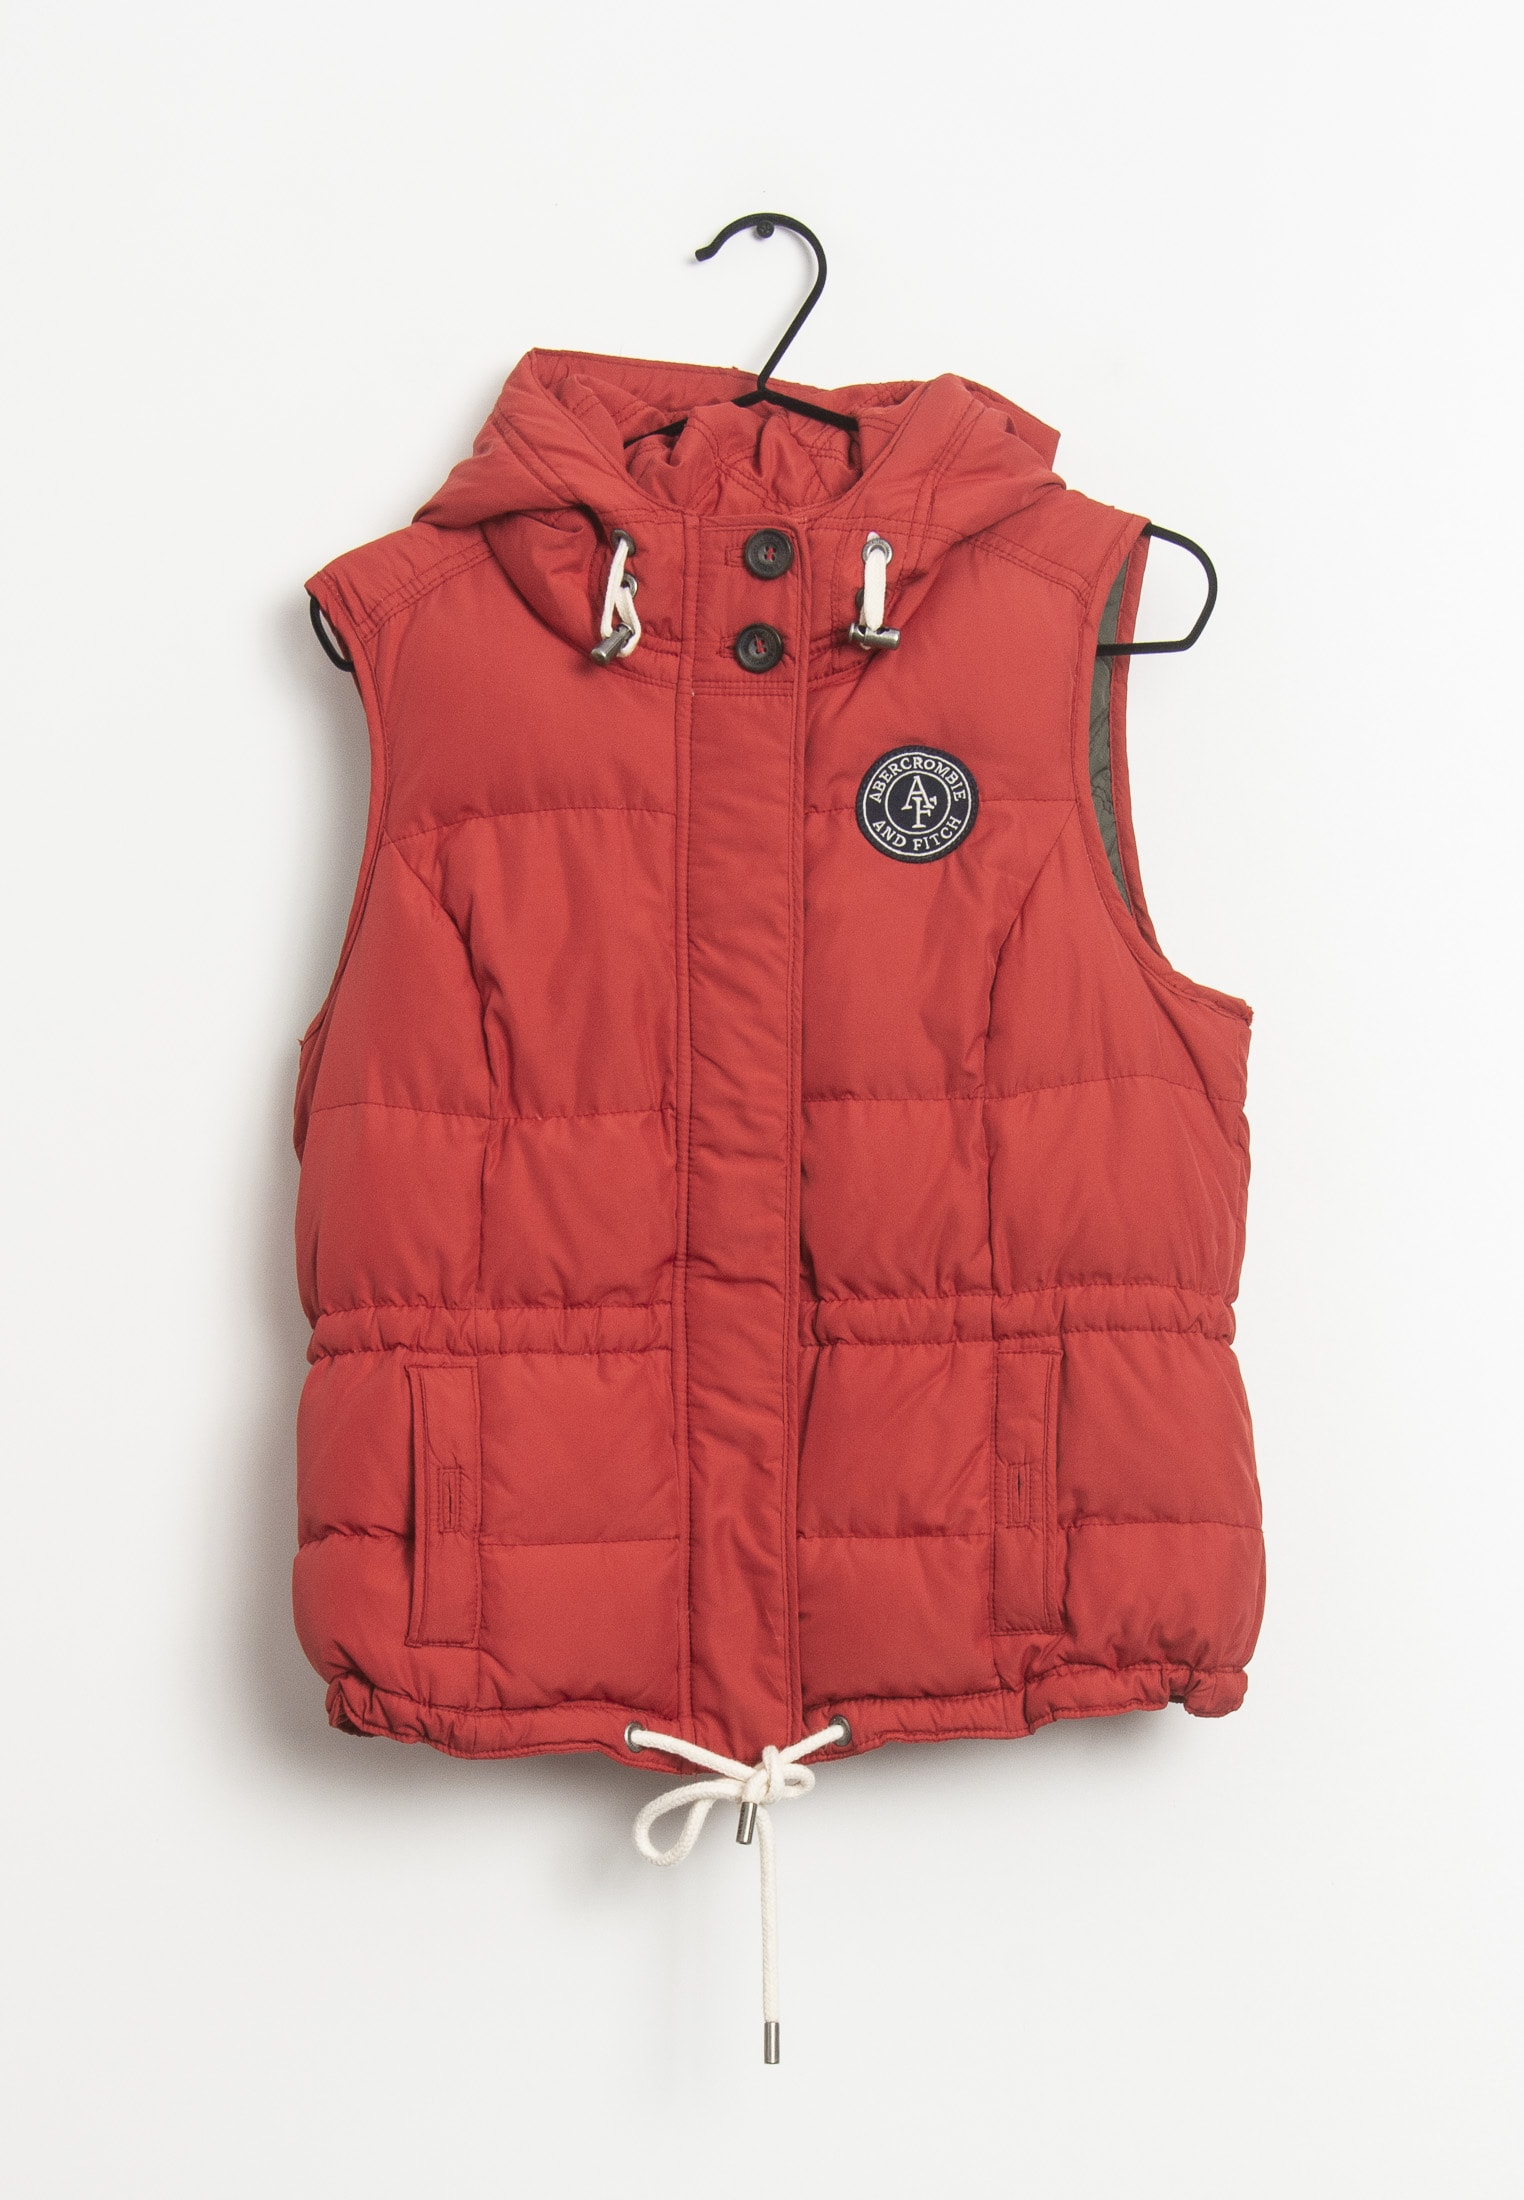 Abercrombie & Fitch Weste Rot Gr.M